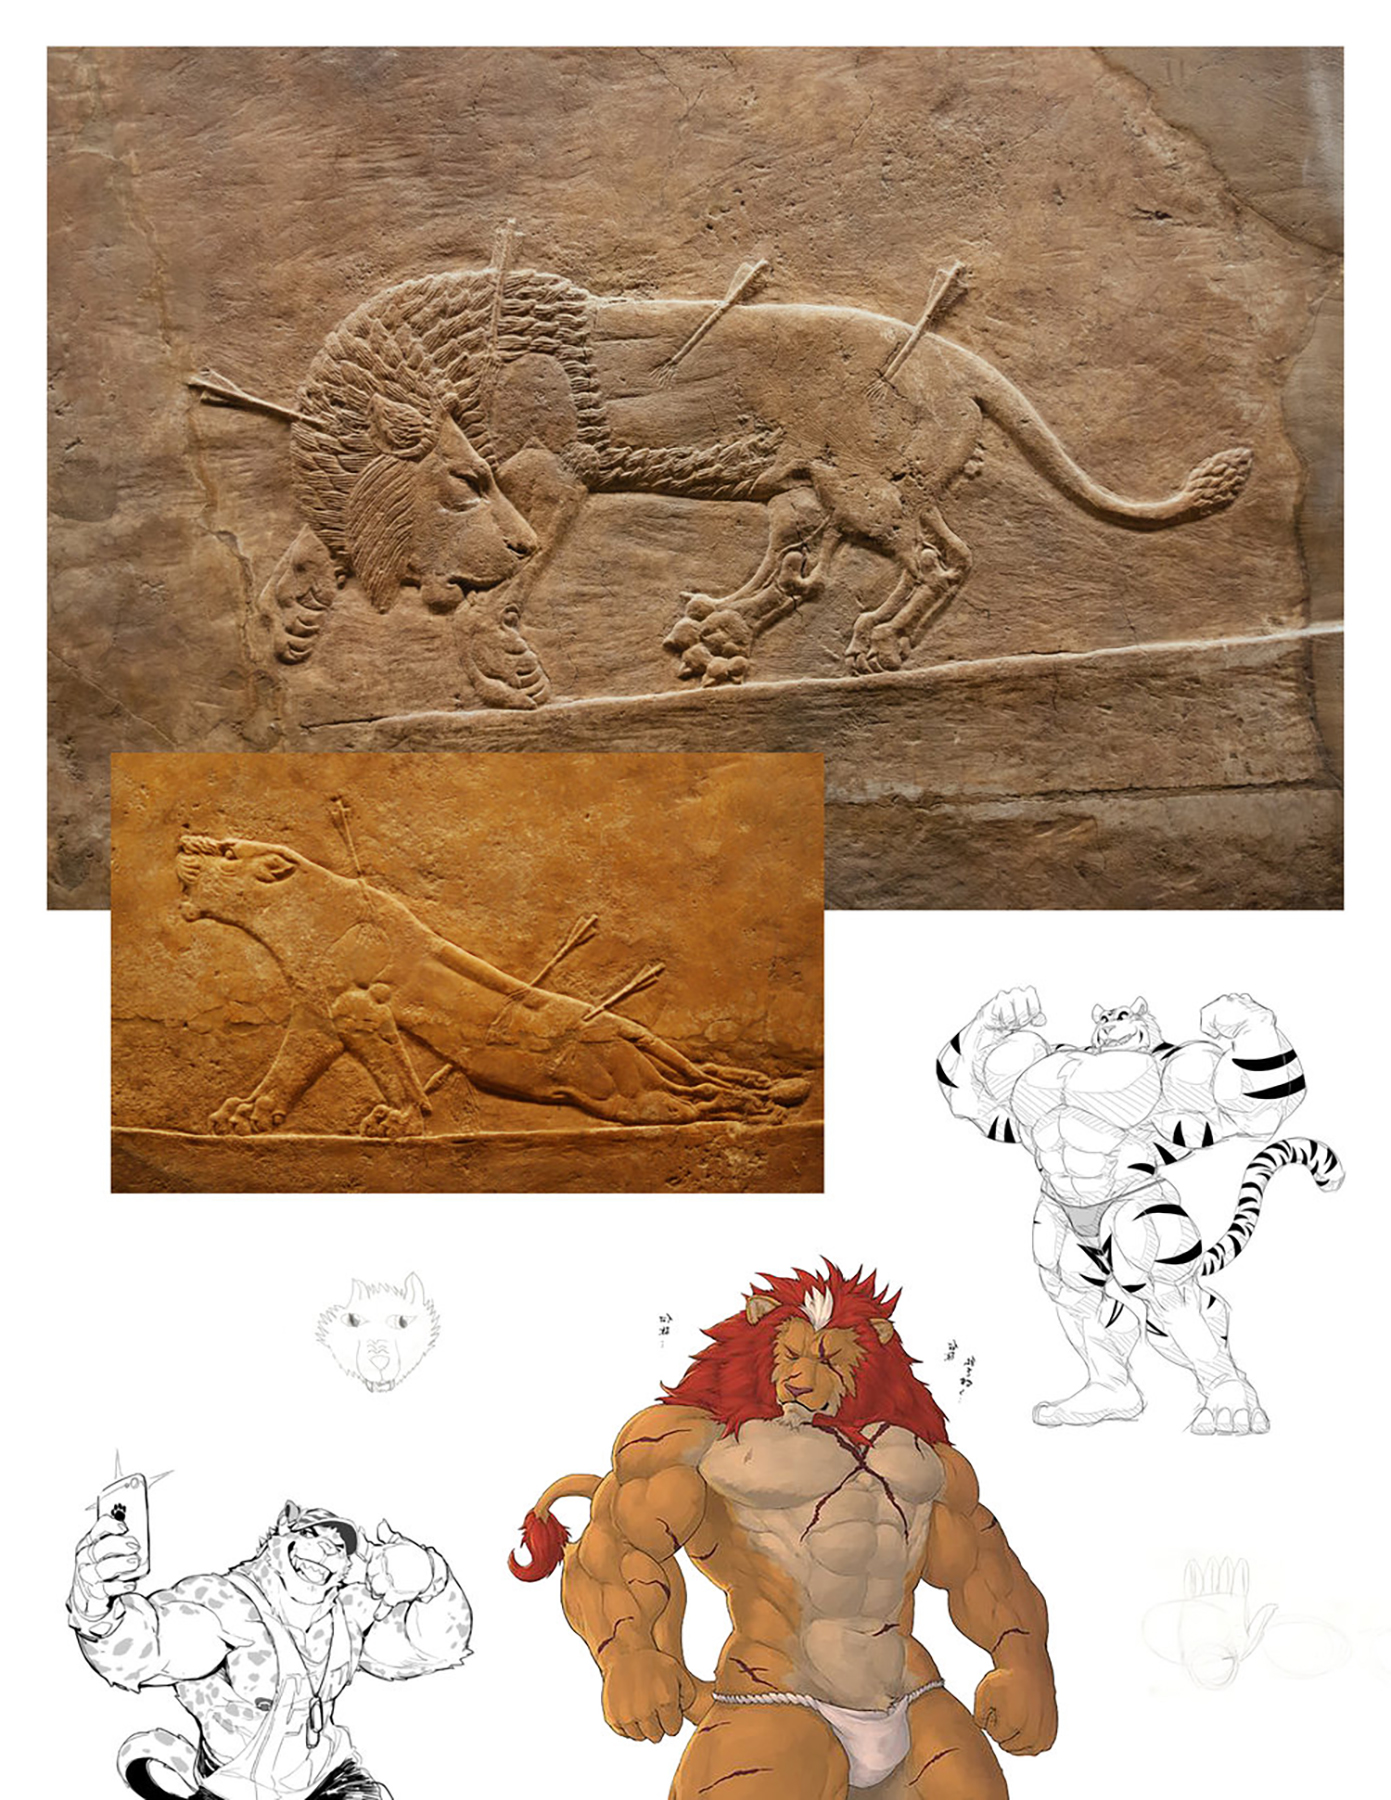 collarge artwork featuring archaeological details